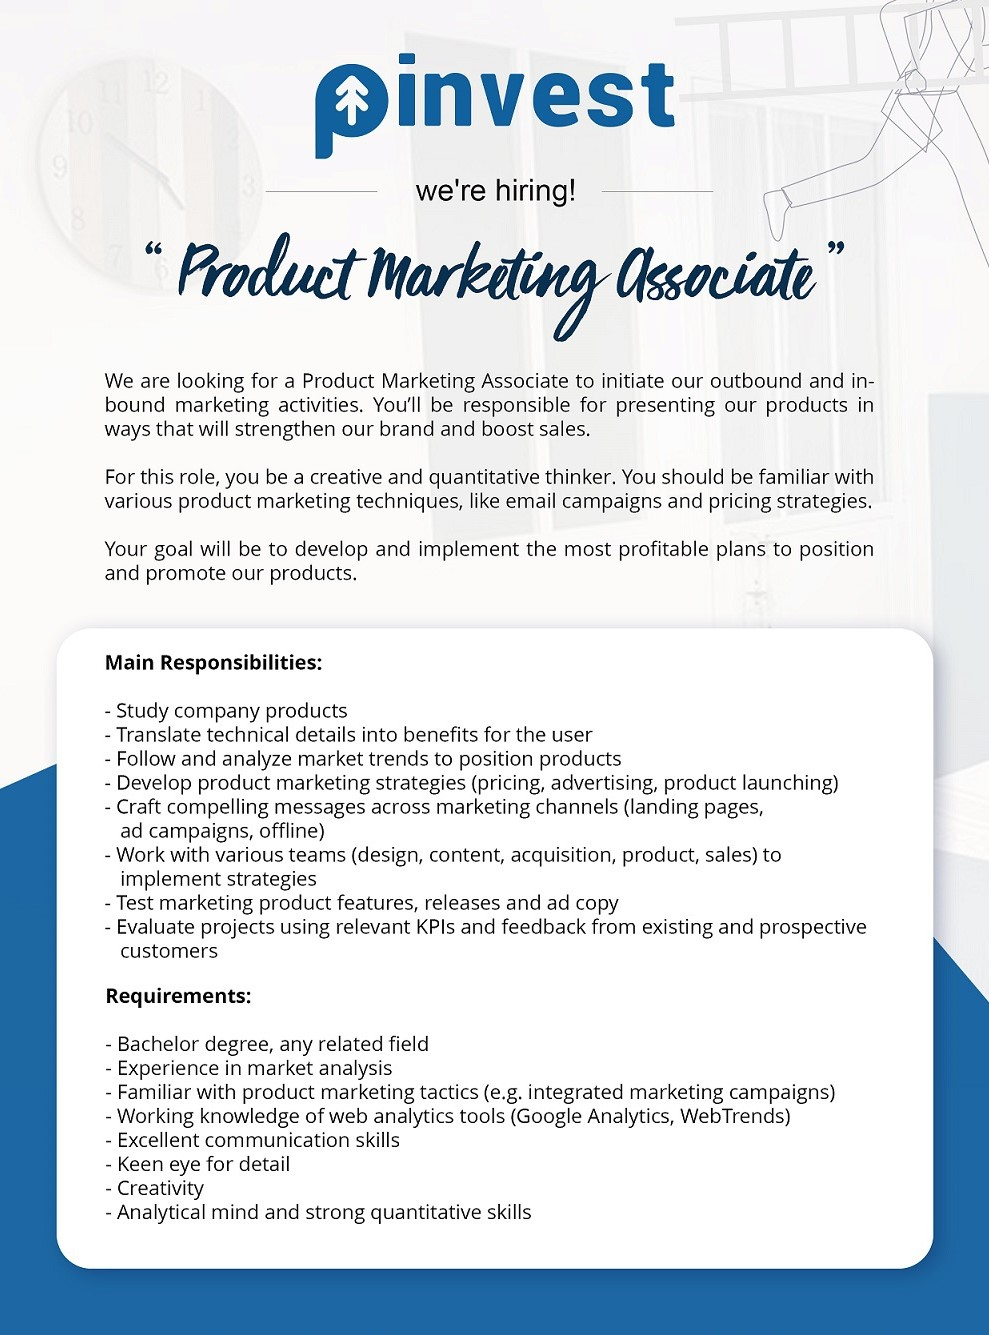 Product Marketing Associate at Pinvest